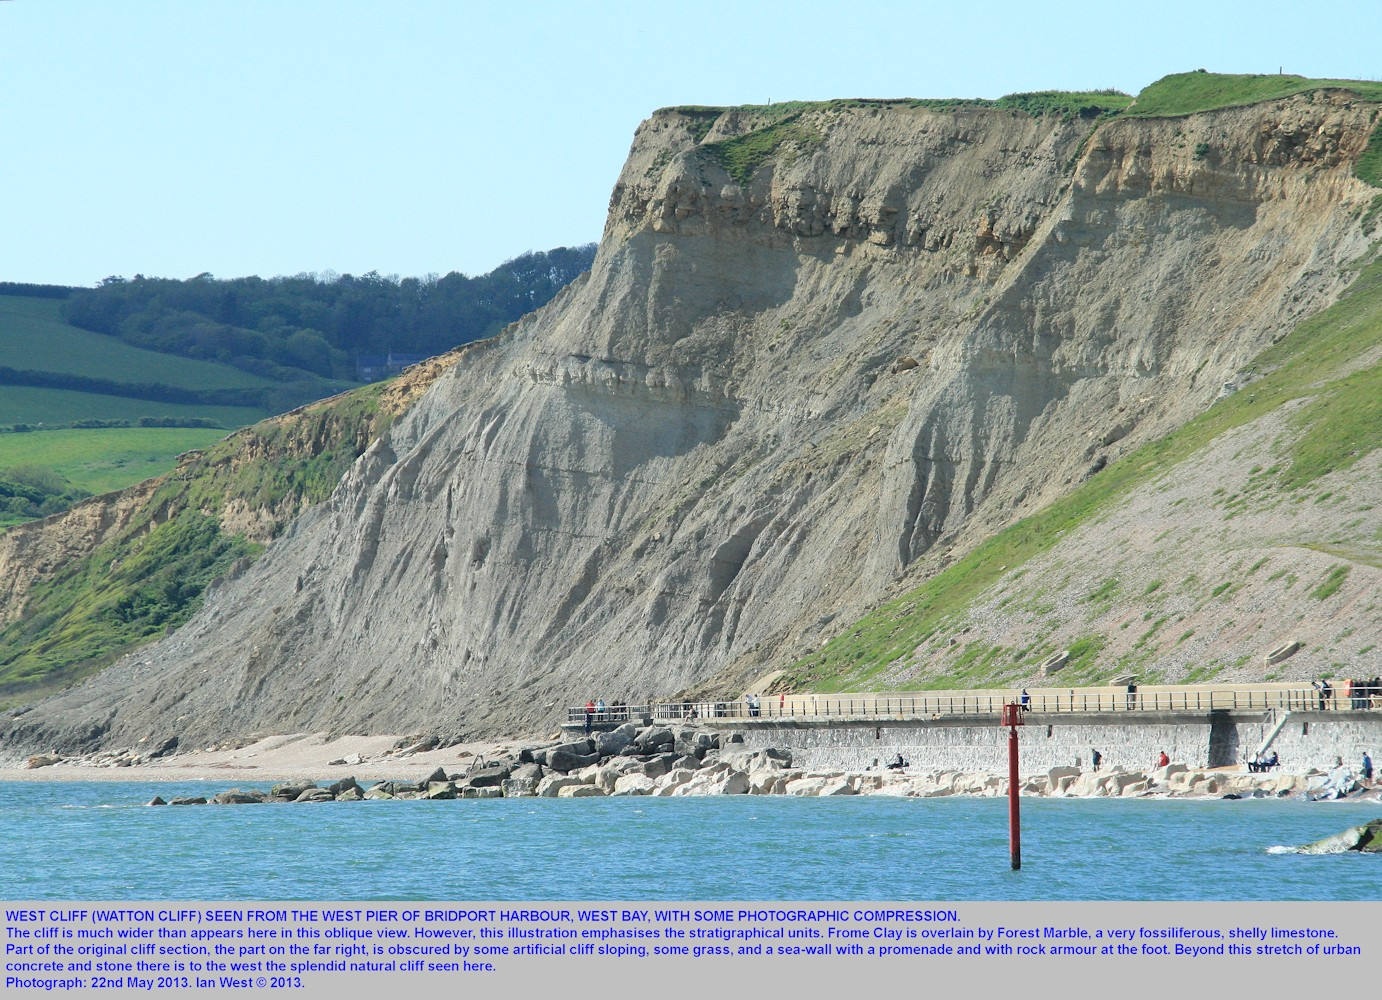 An overview of West Cliff, West Bay, Bridport, Dorset, seen from the western pier of Bridport Harbour, May 2013